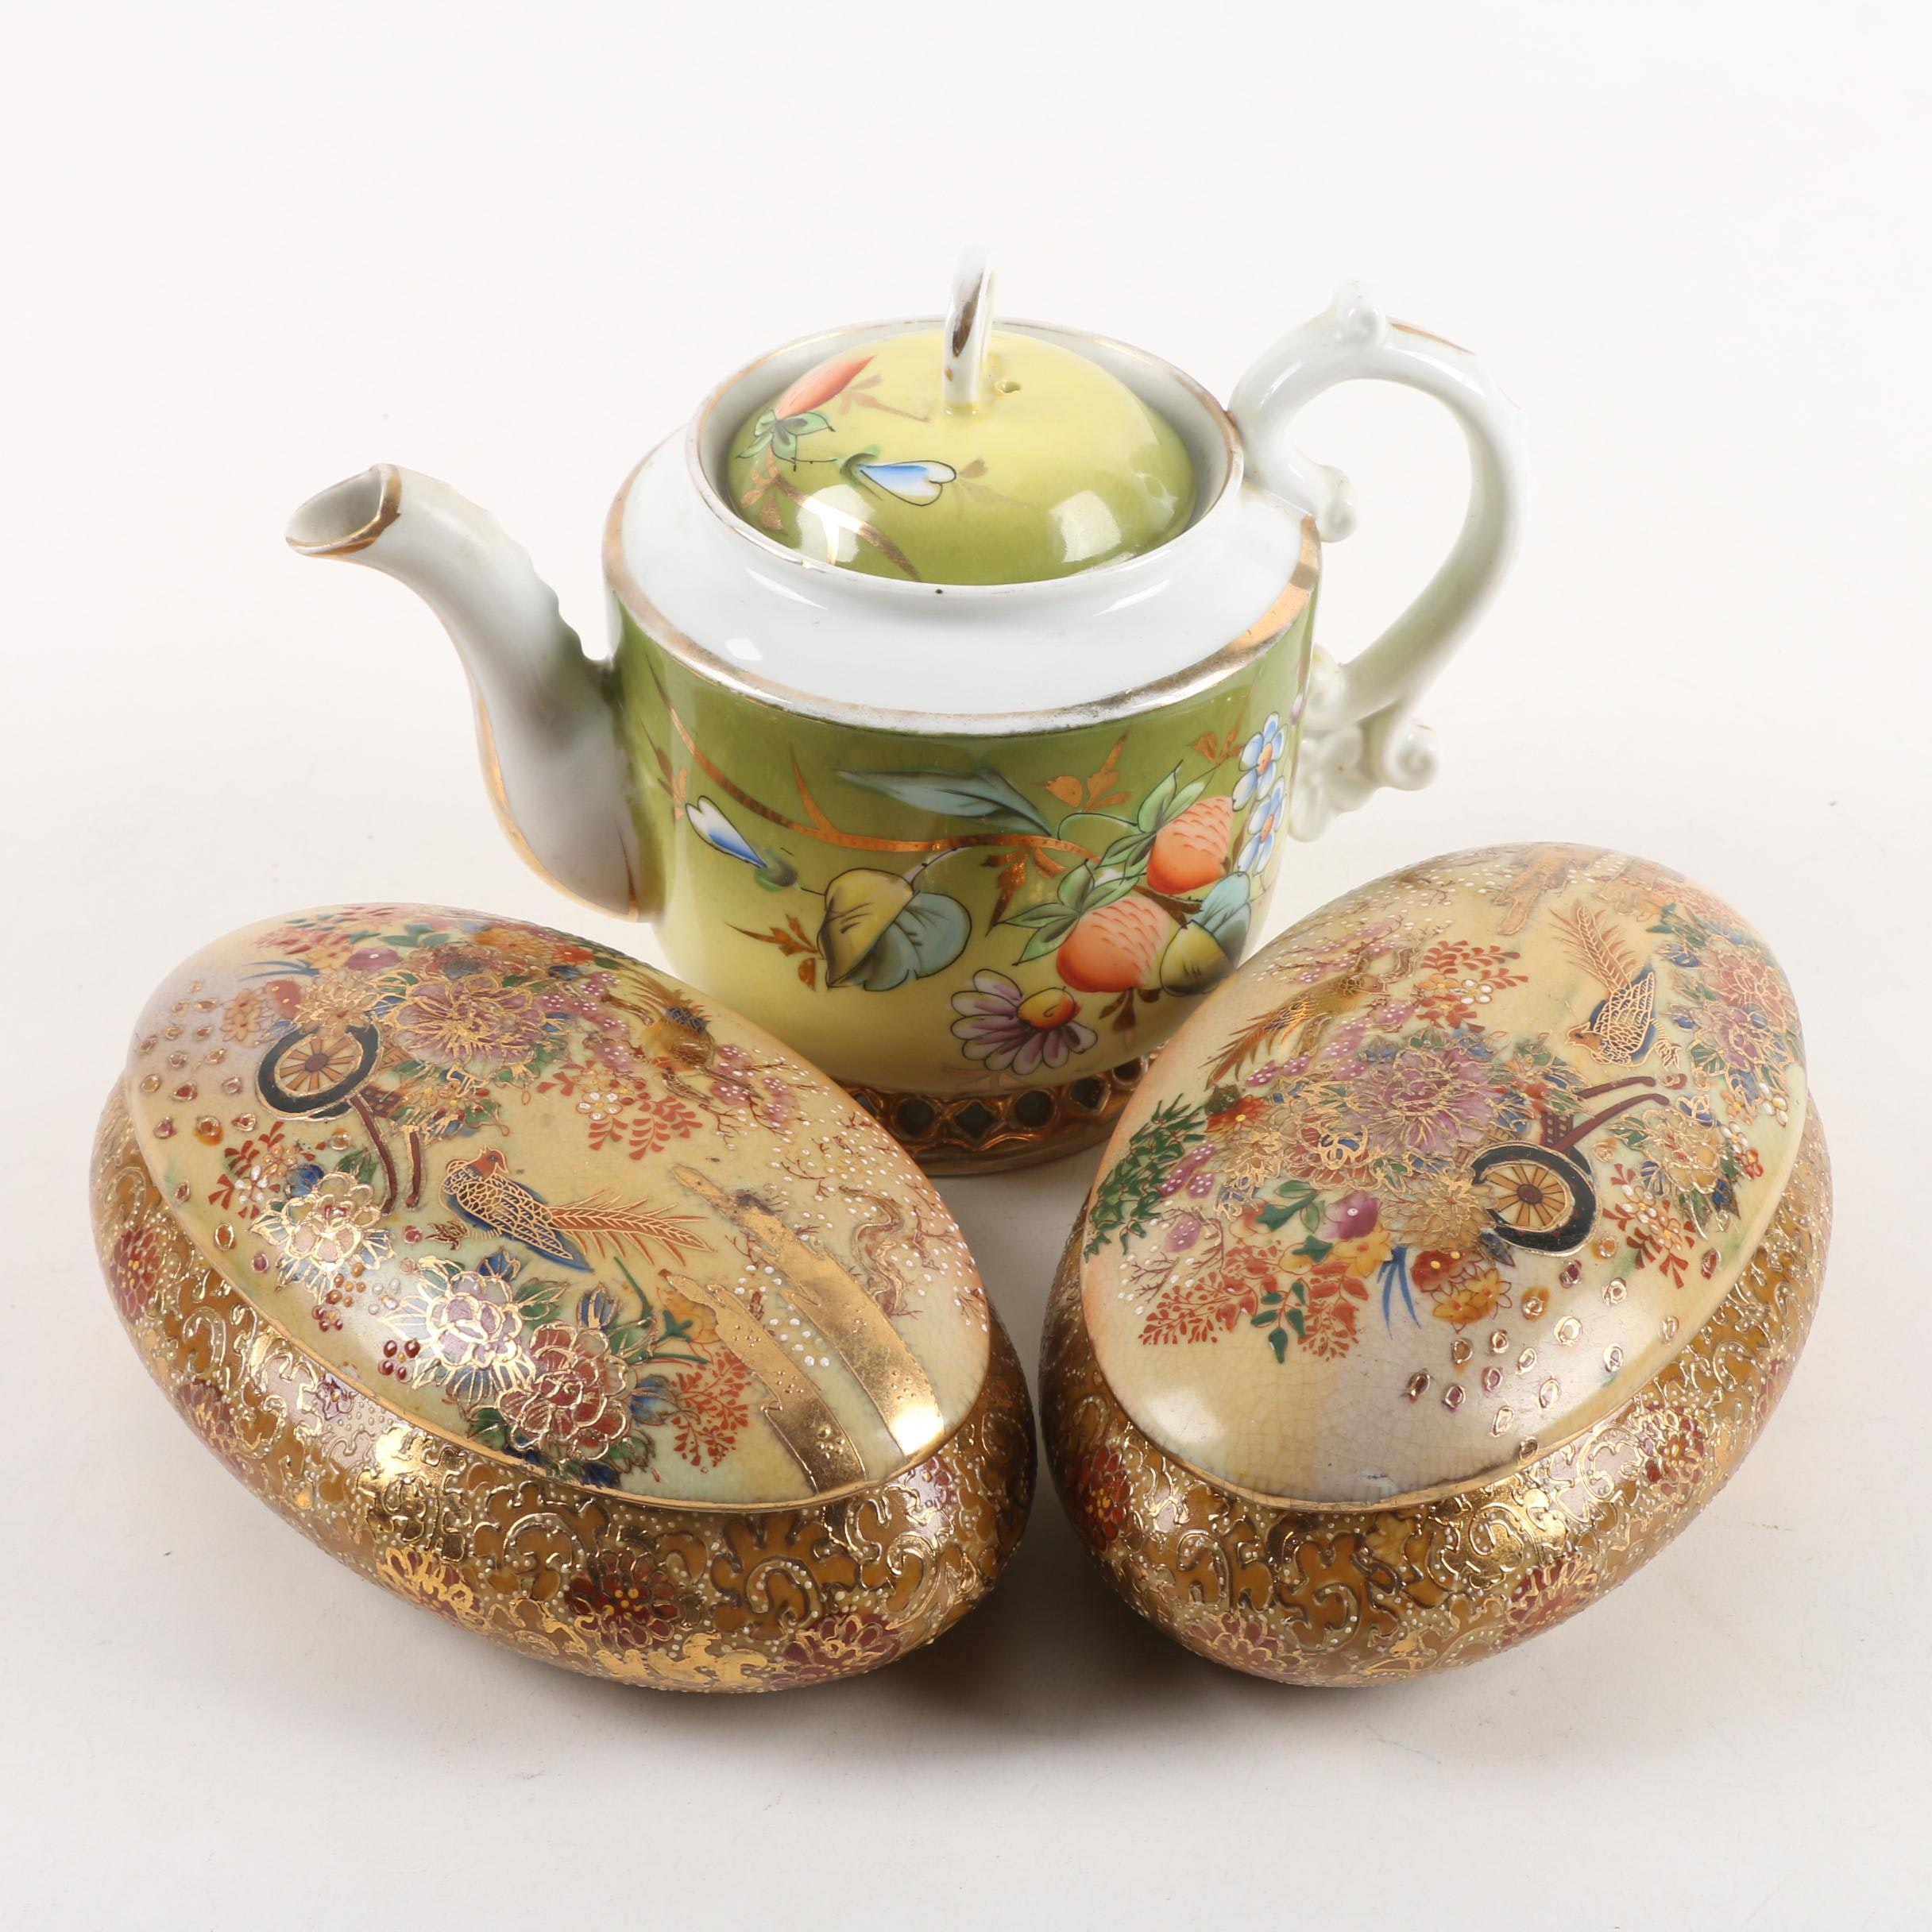 Porcelain Teapot and Chinese Satsuma Style Trinket Boxes